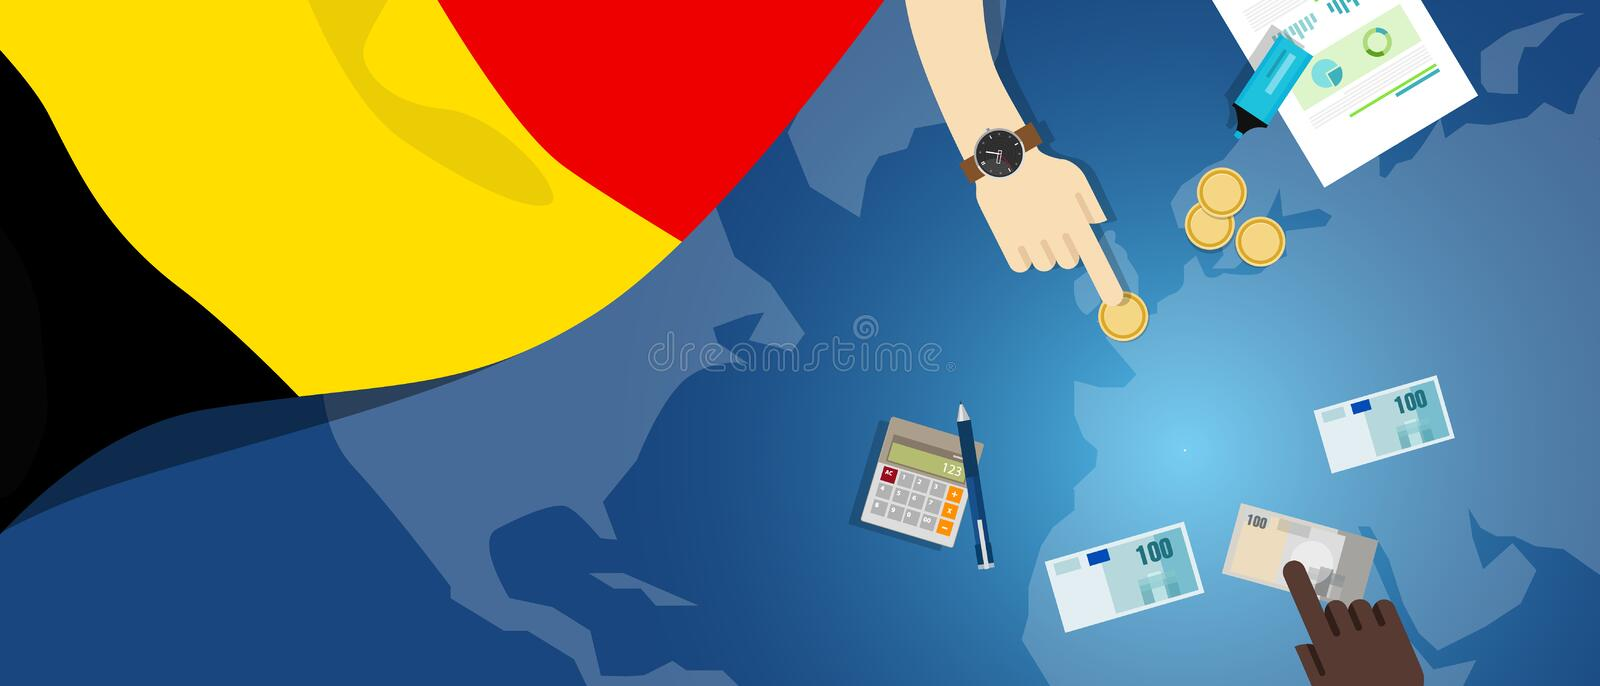 Belgium economy fiscal money trade concept illustration of financial banking budget with flag map and currency. Vector vector illustration